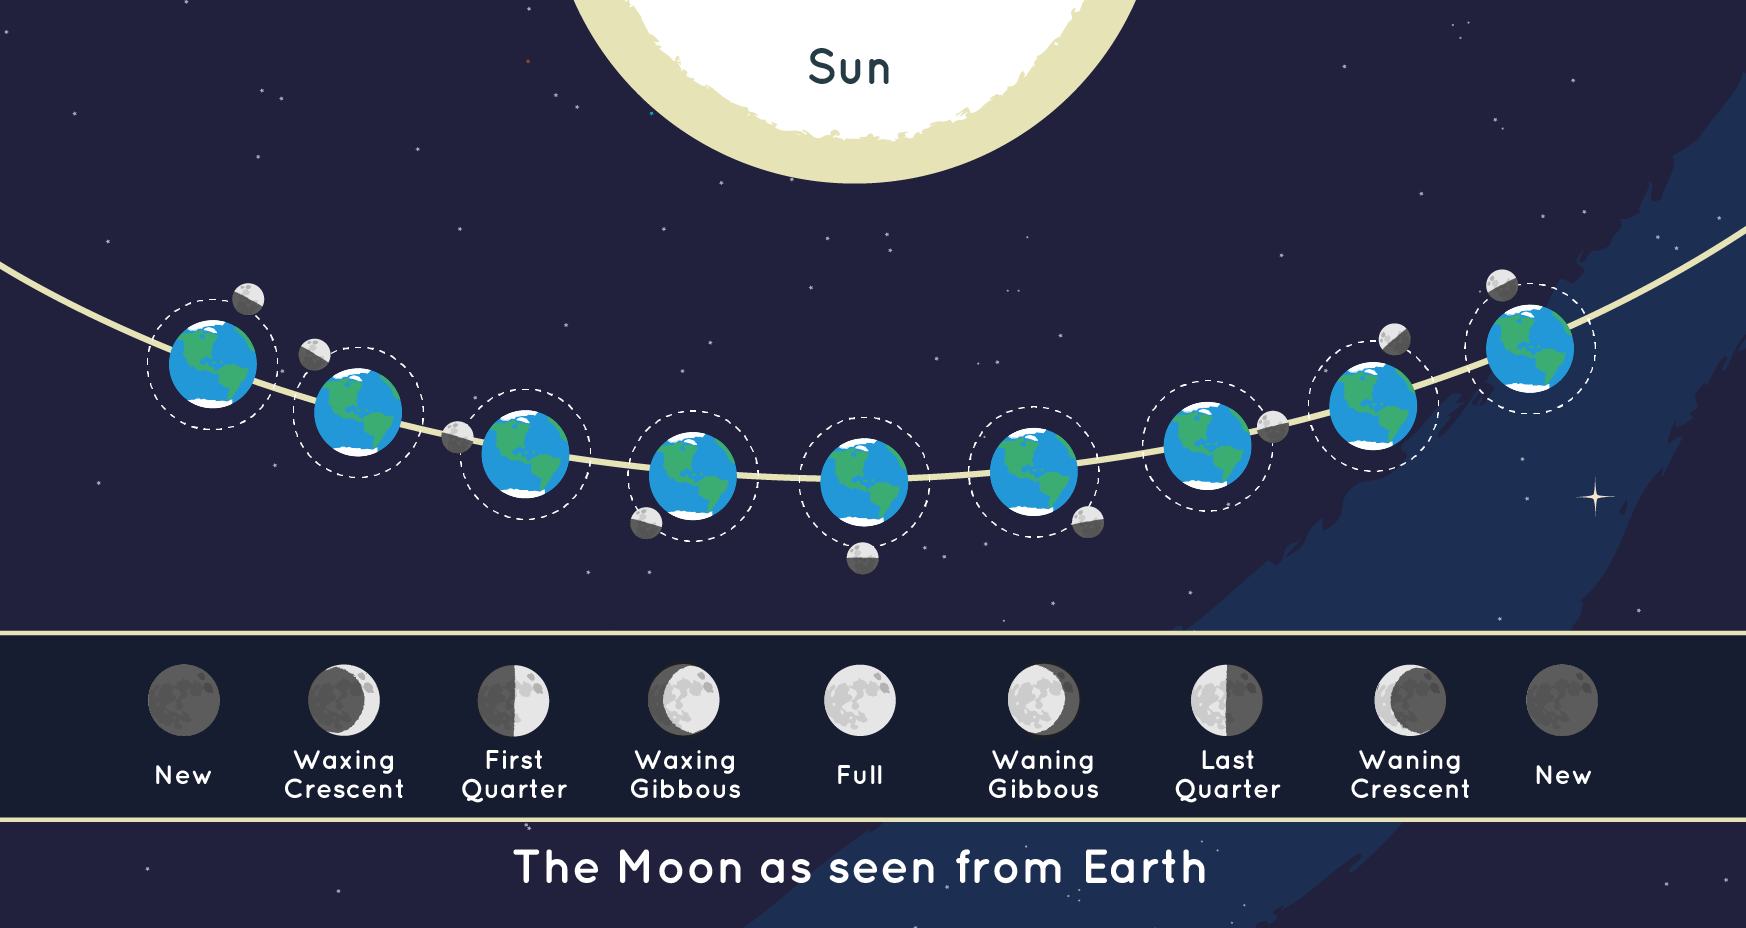 Moon phases diagram explained. Sun, Earth, Moon